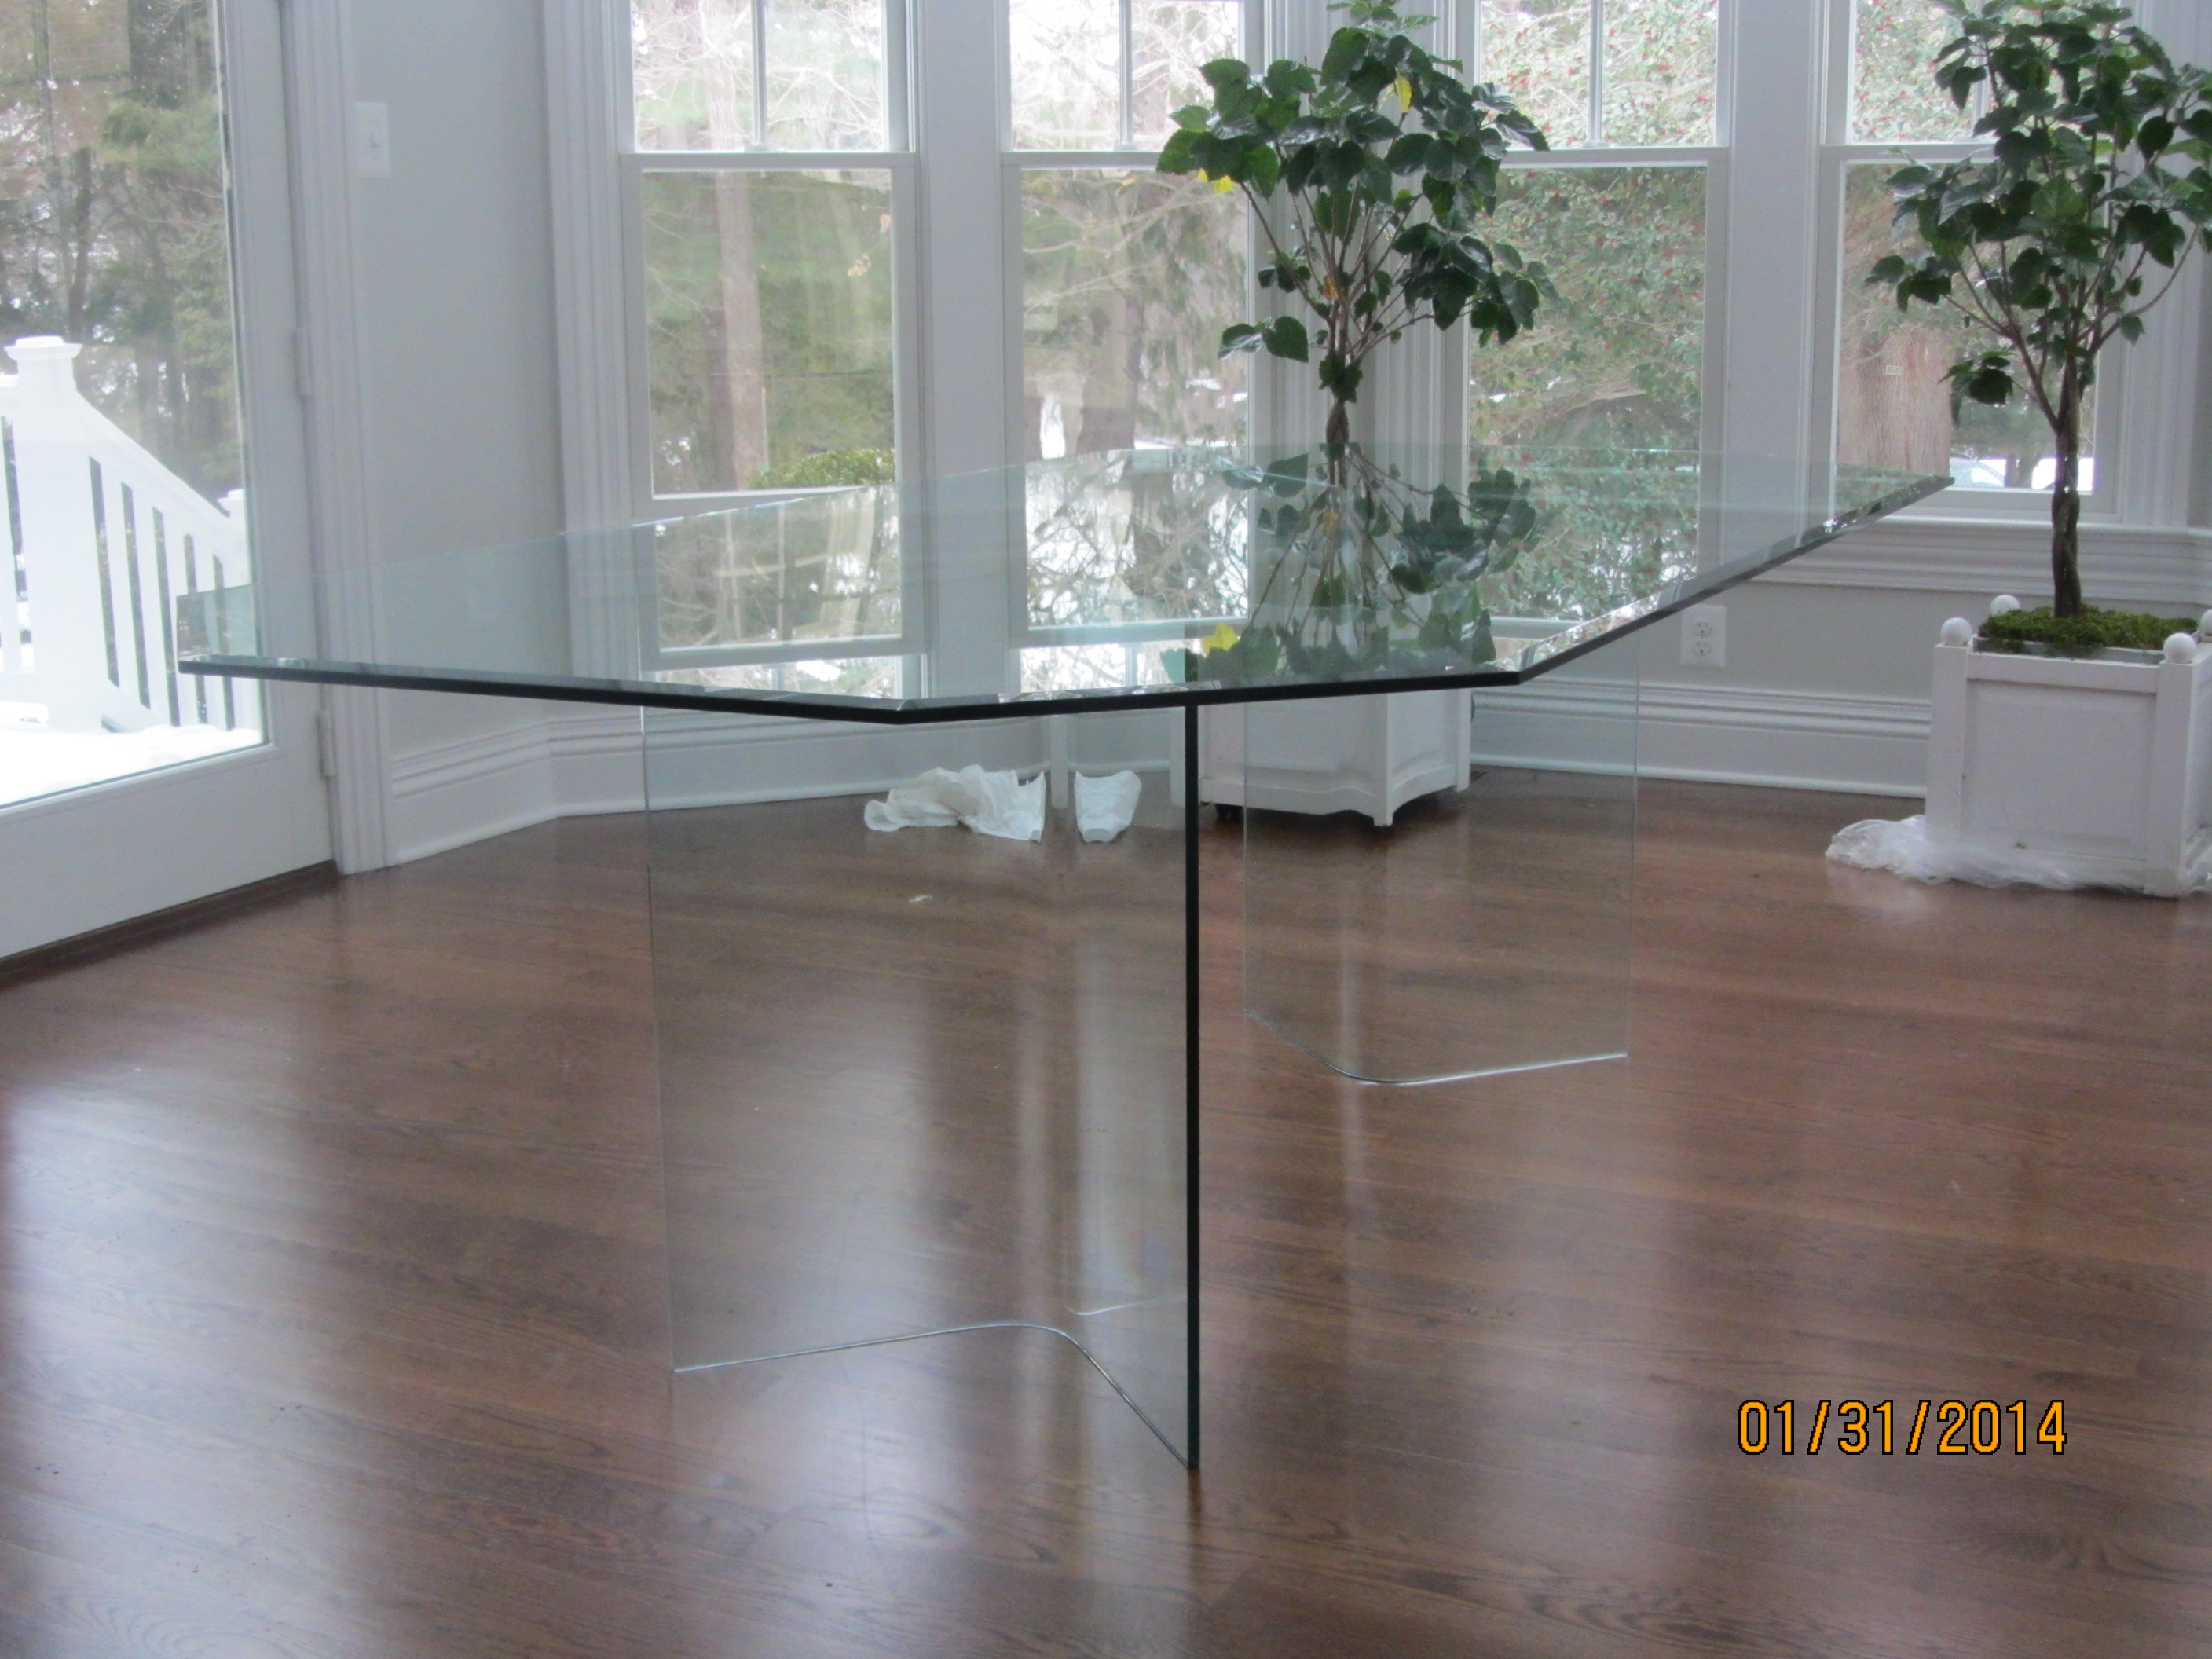 all_glass_table3.JPG